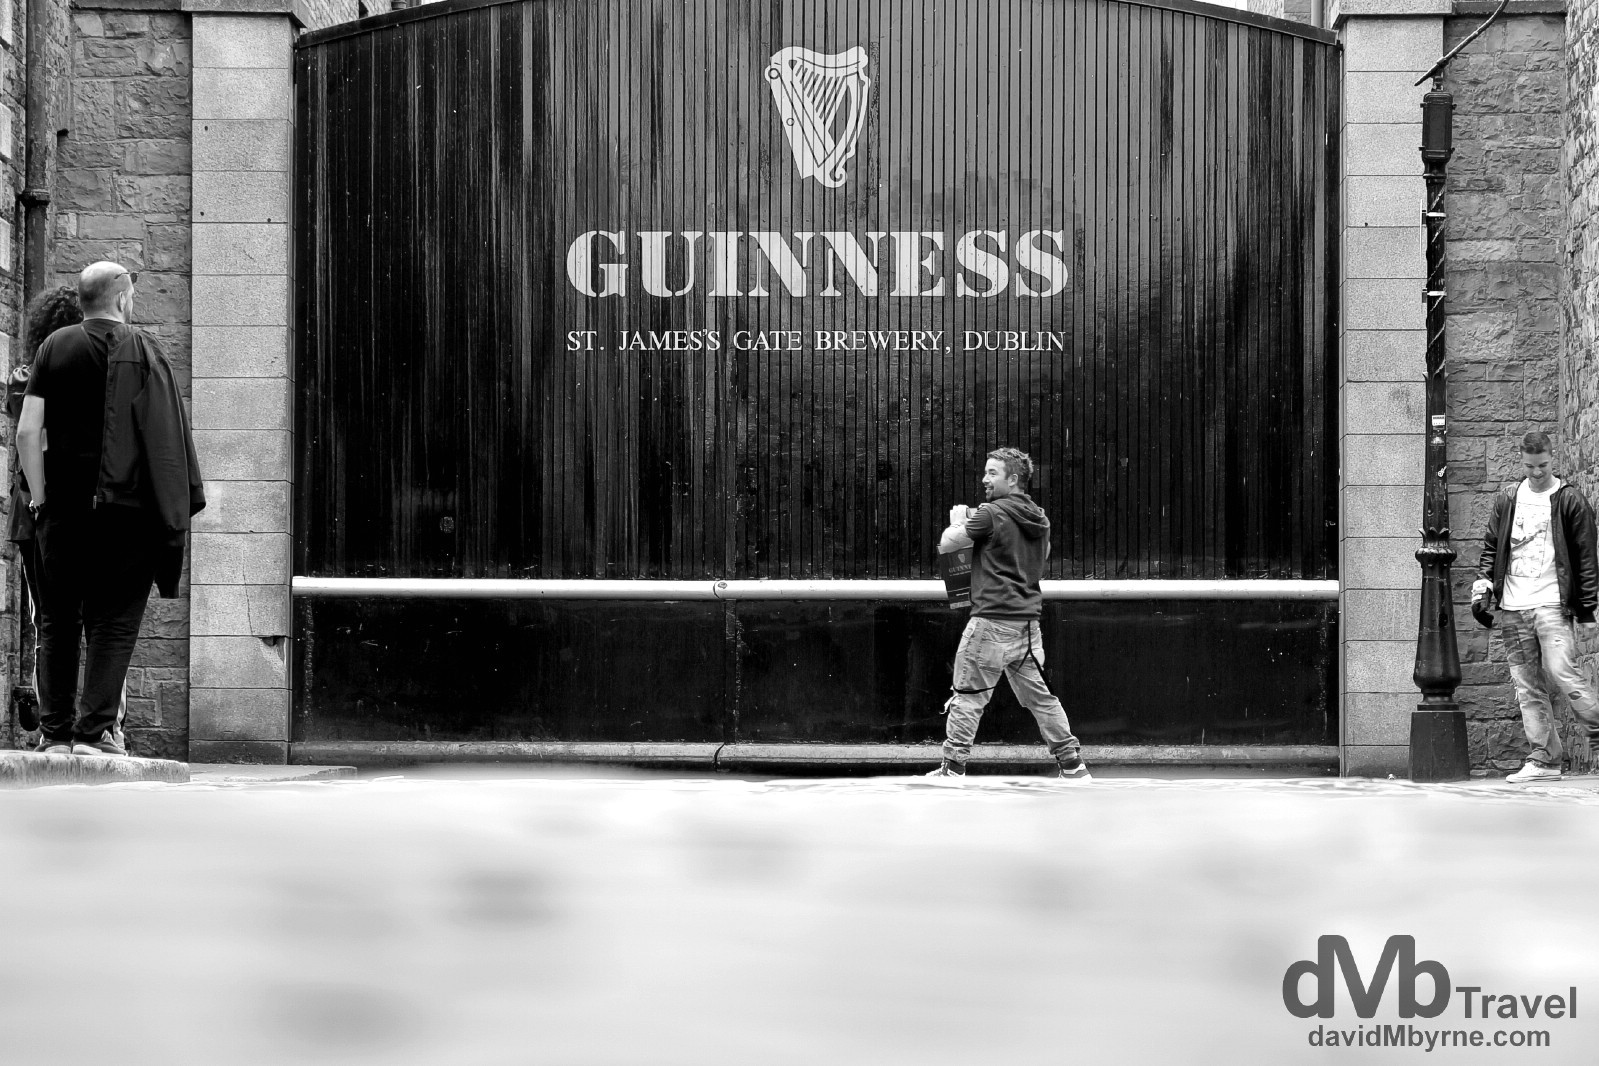 St. Jame's Gate, the home of Guinness. Dublin, Ireland. September 1, 2014.